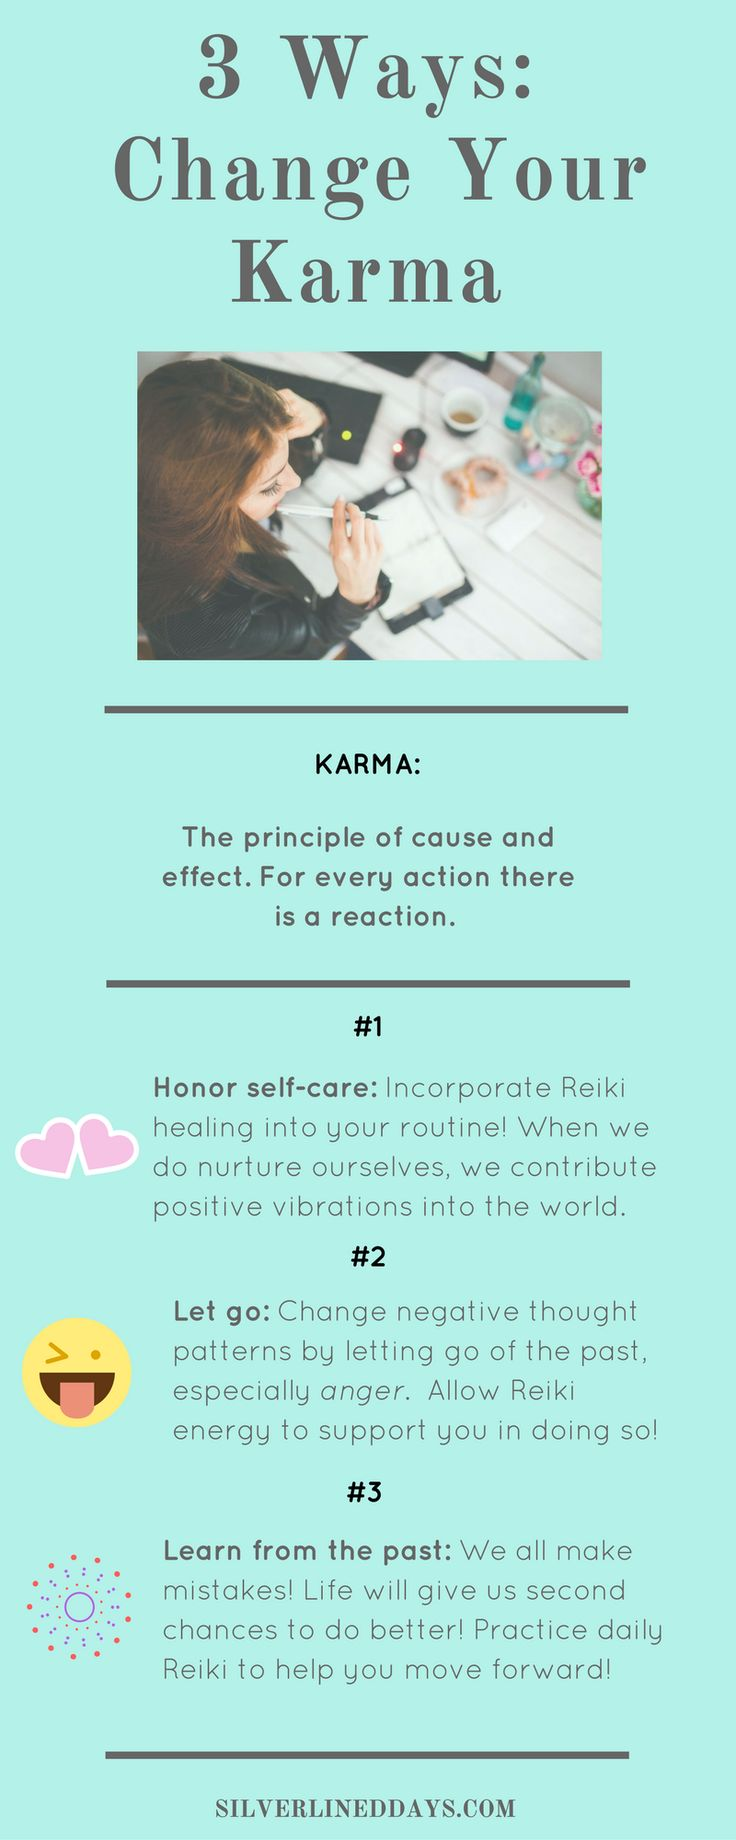 Regretting your last mistake? Karma refers to the principle of cause and effect. For every action there is a reaction. Here's how you can change your karma in an instant...  karma   reiki healing   positive thinking   positive mindset   energy healing   raise vibrations   law of attraction   chakra balancing   happiness   spirituality